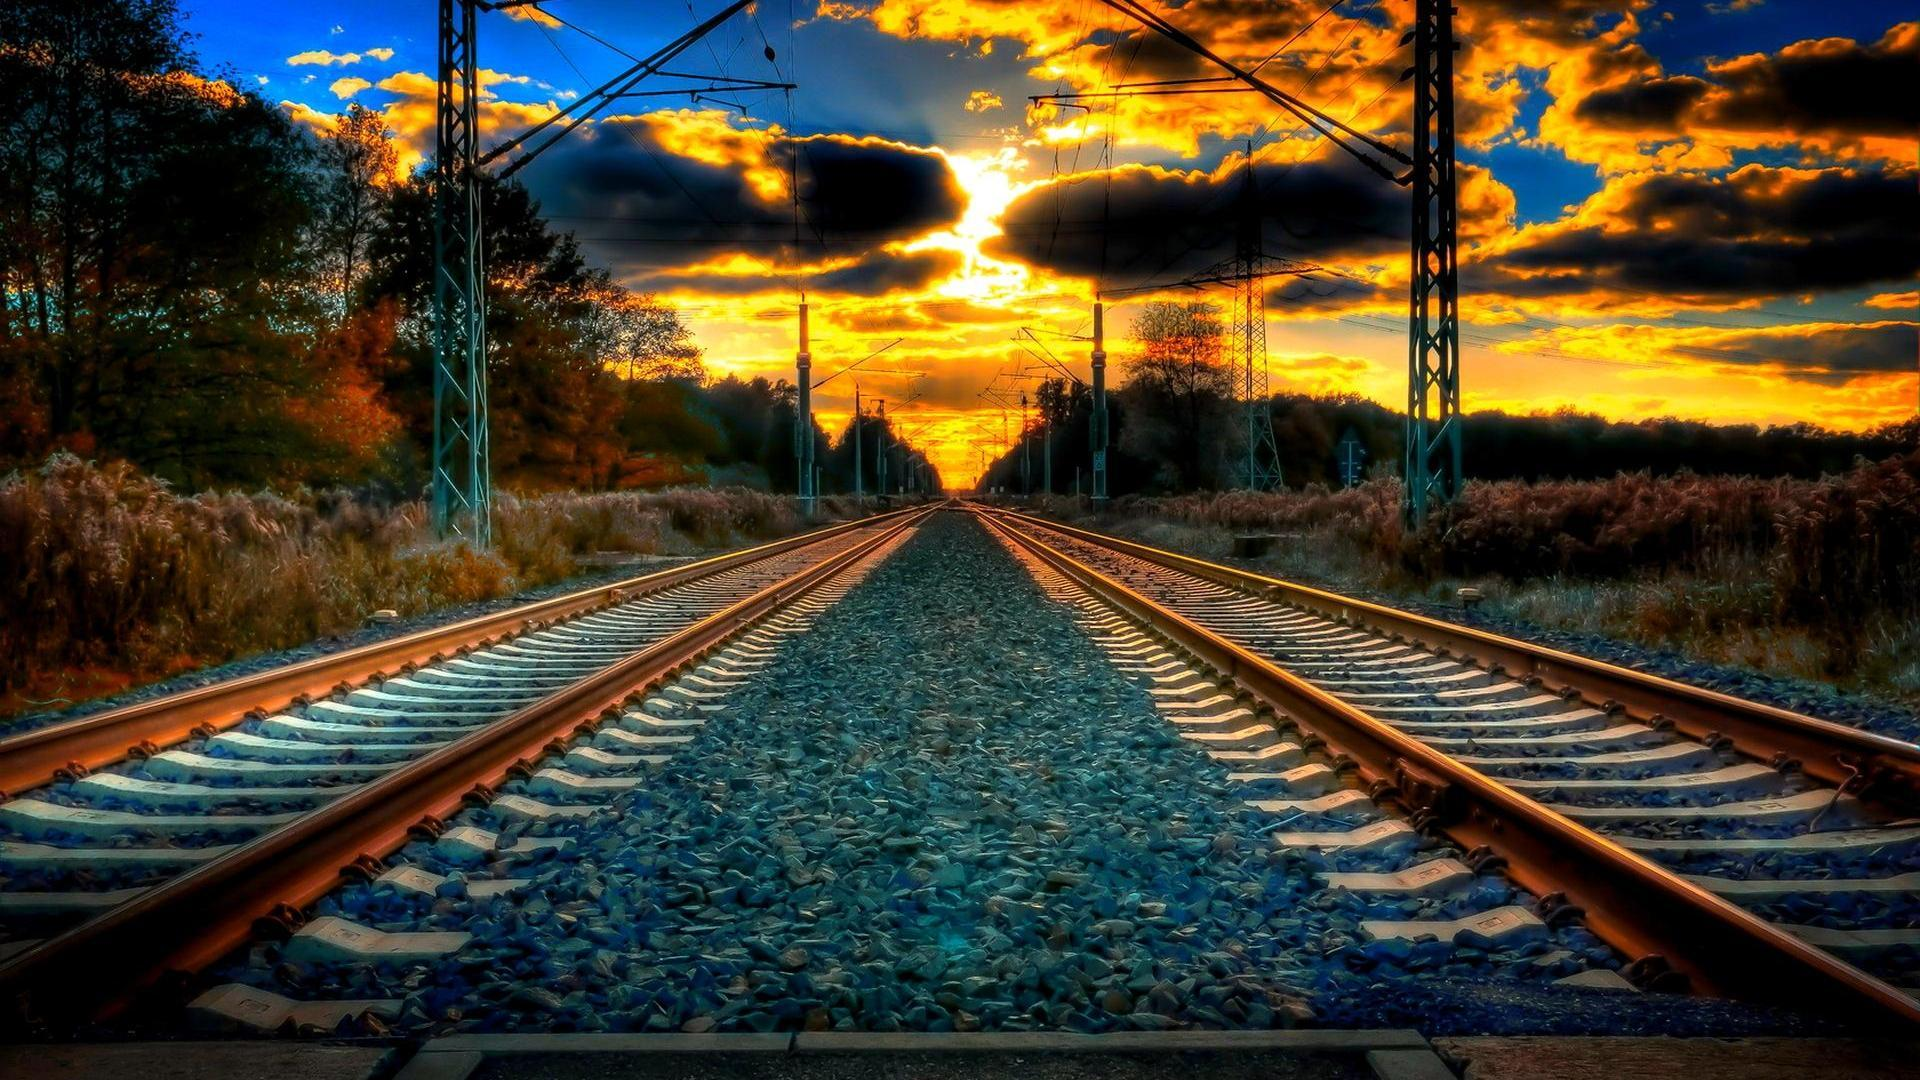 Train Wallpapers Android Apps on Google Play